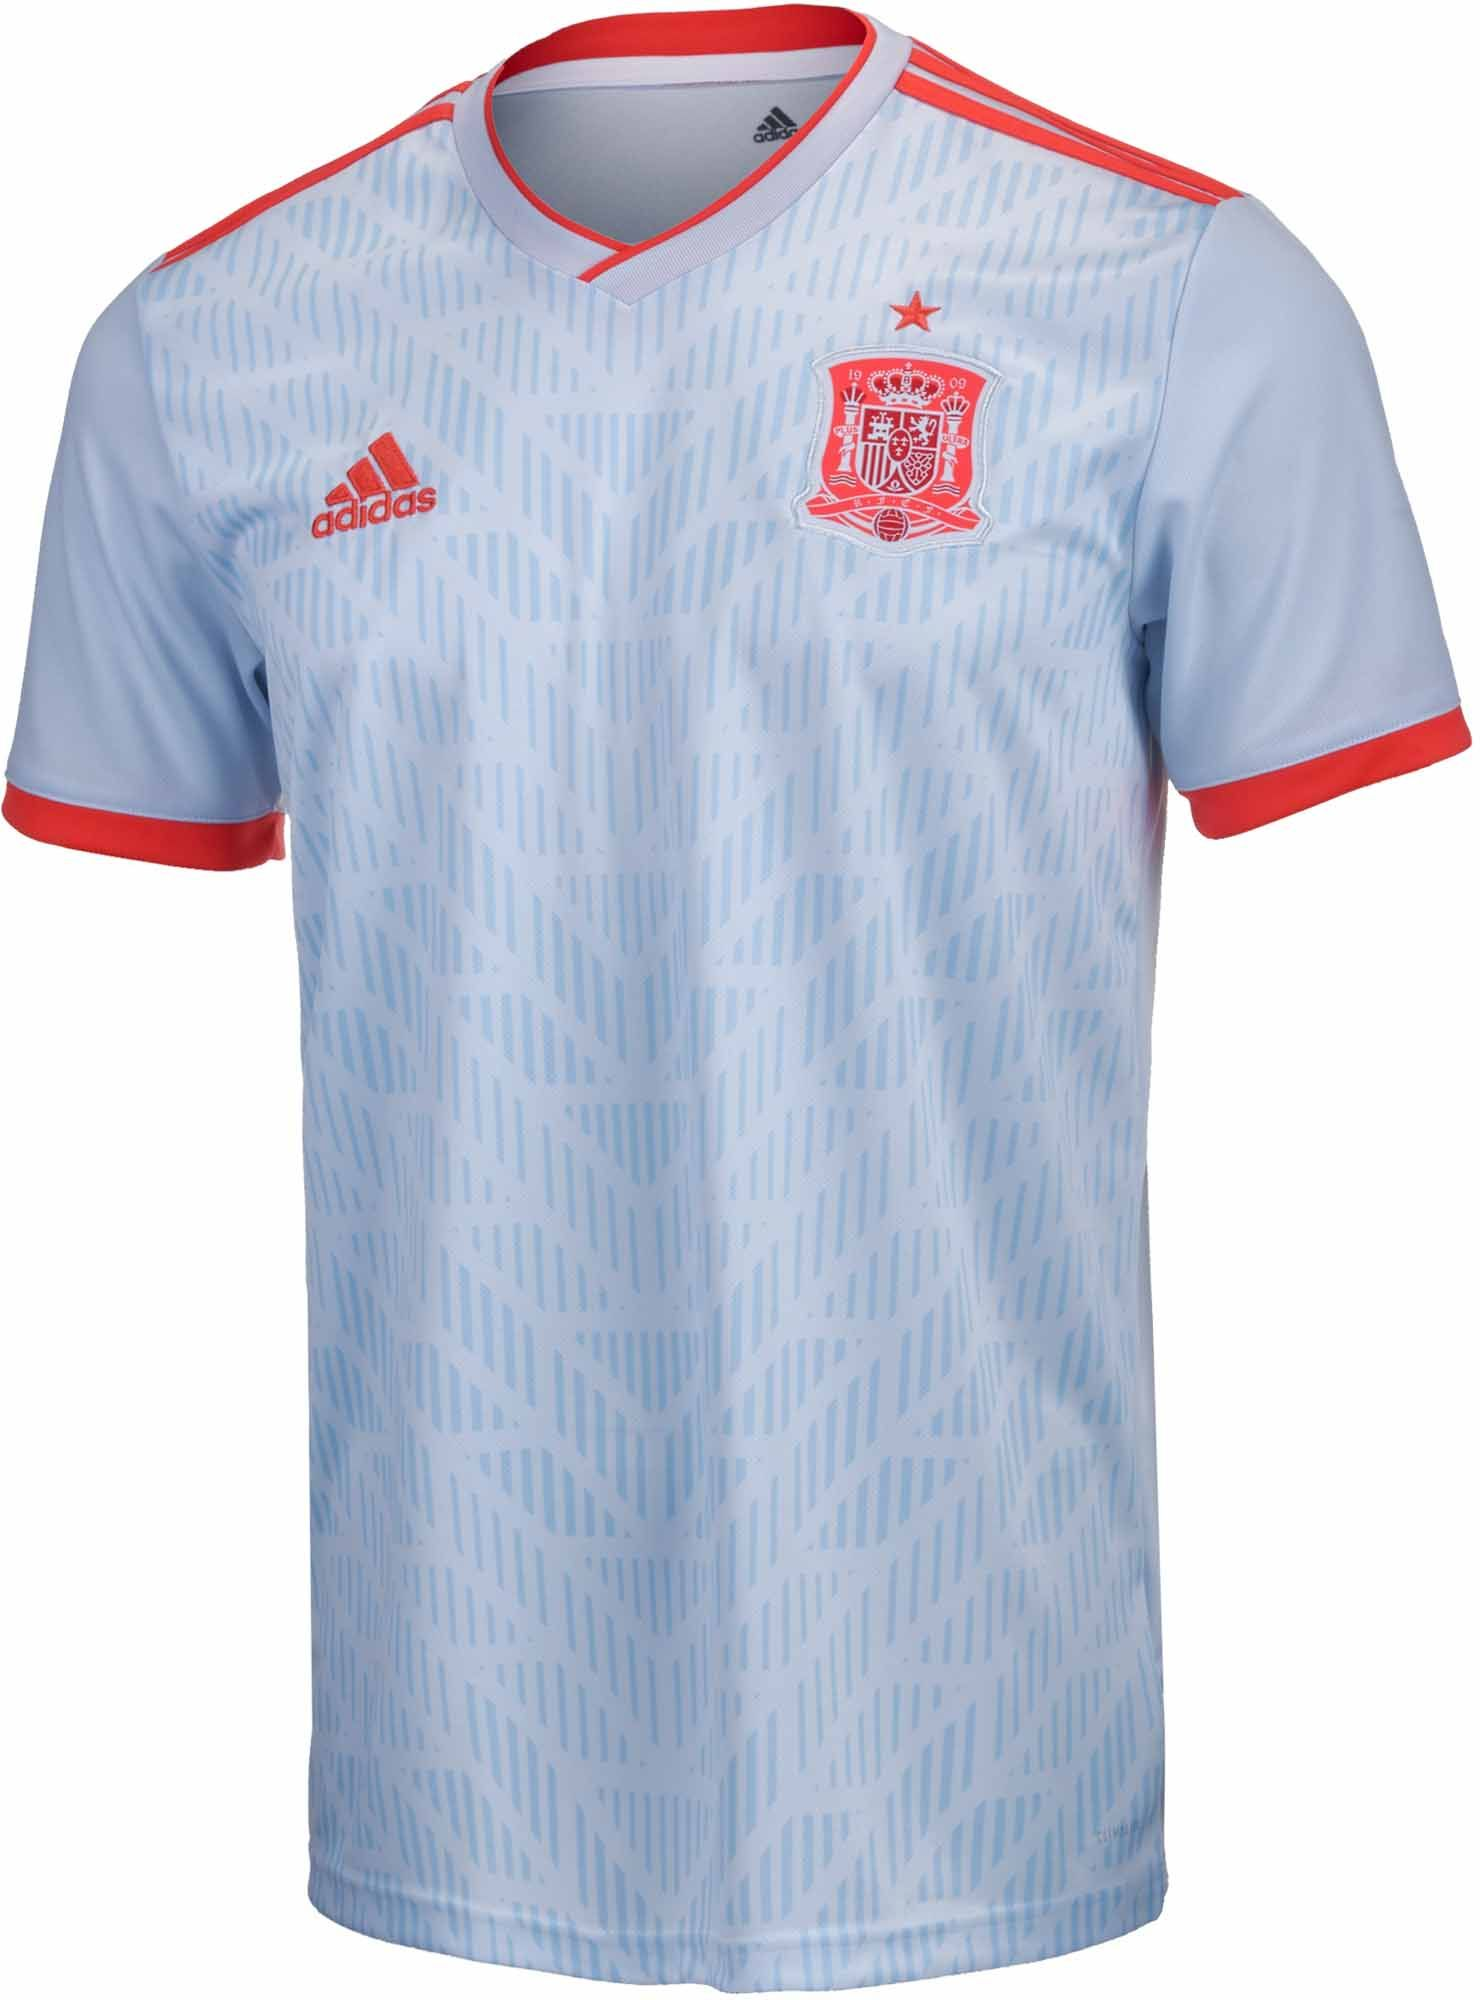 Kids 2018 adidas Spain Away Jersey. Hot right now at SoccerPro. f21130b0c1c2f